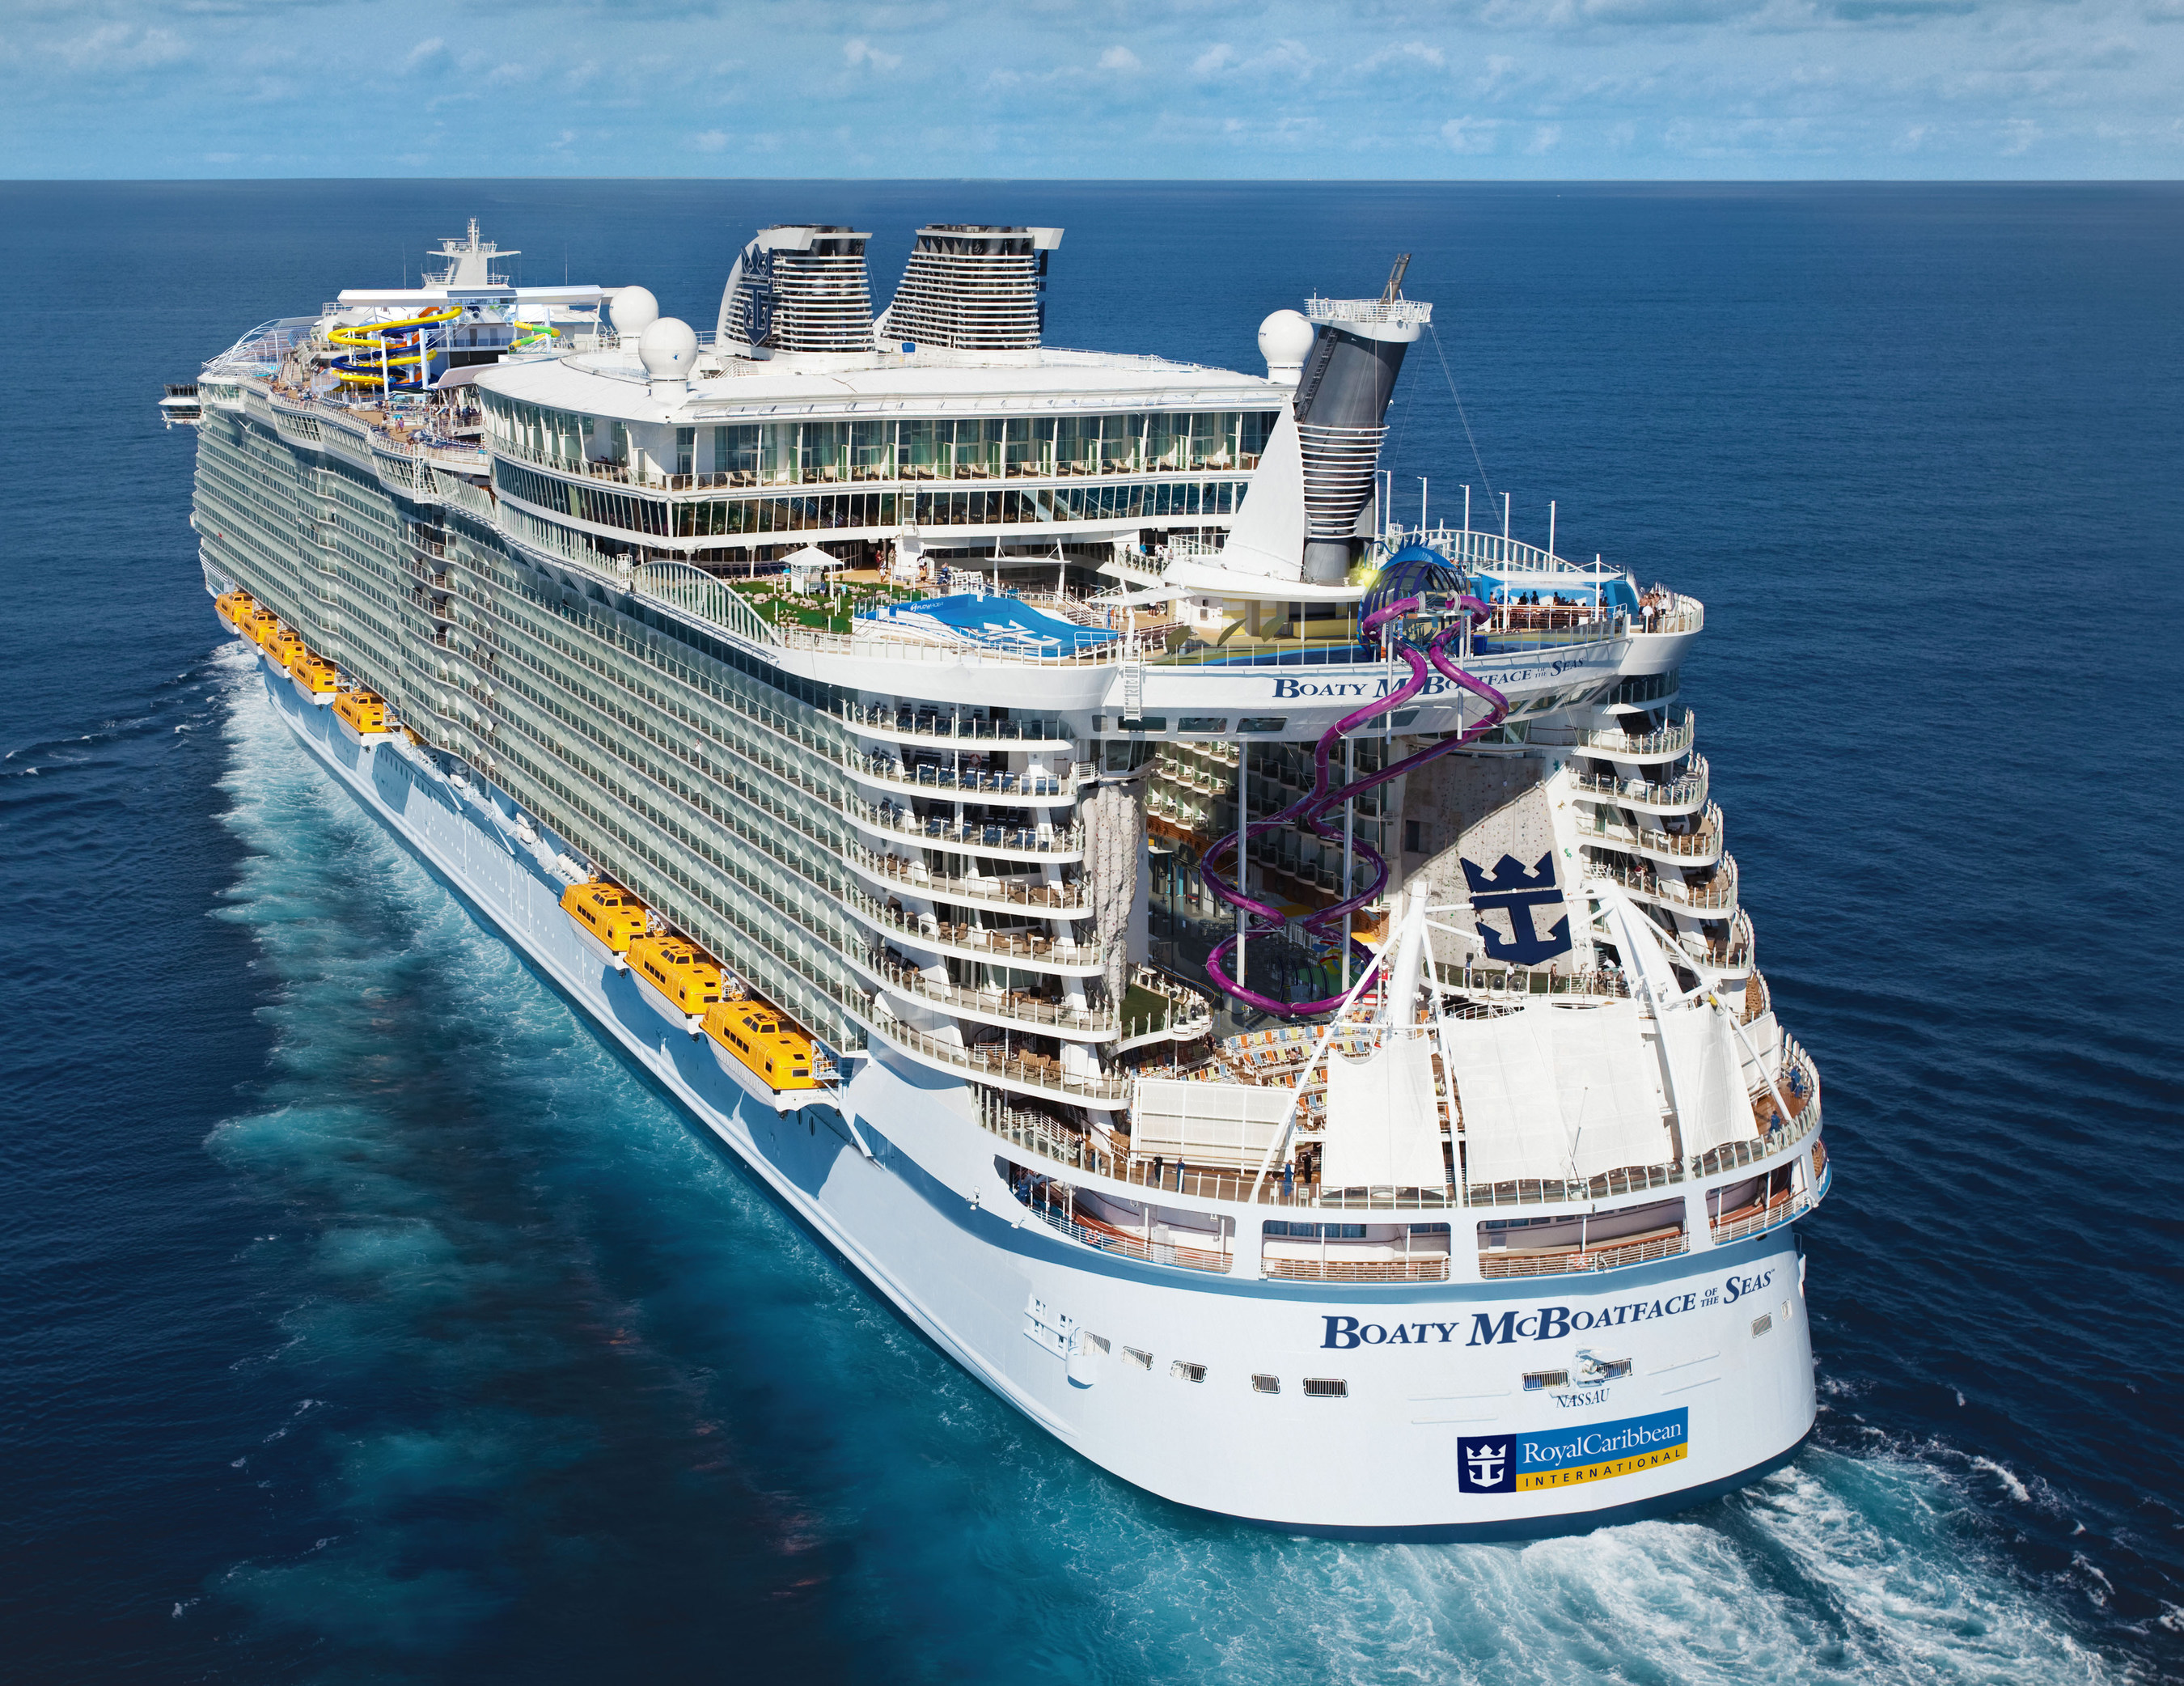 Royal Caribbean's newest and biggest ship yet, Harmony of the Seas, is imagined as Boaty McBoatface of the Seas. The cruise line has invited UK-based James Hand, the wordsmith behind the creative Boaty McBoatface name to sail on Harmony when she launches in Southampton, UK this May. In return, Hand will share his best suggestions to help name a future Royal Caribbean ship.